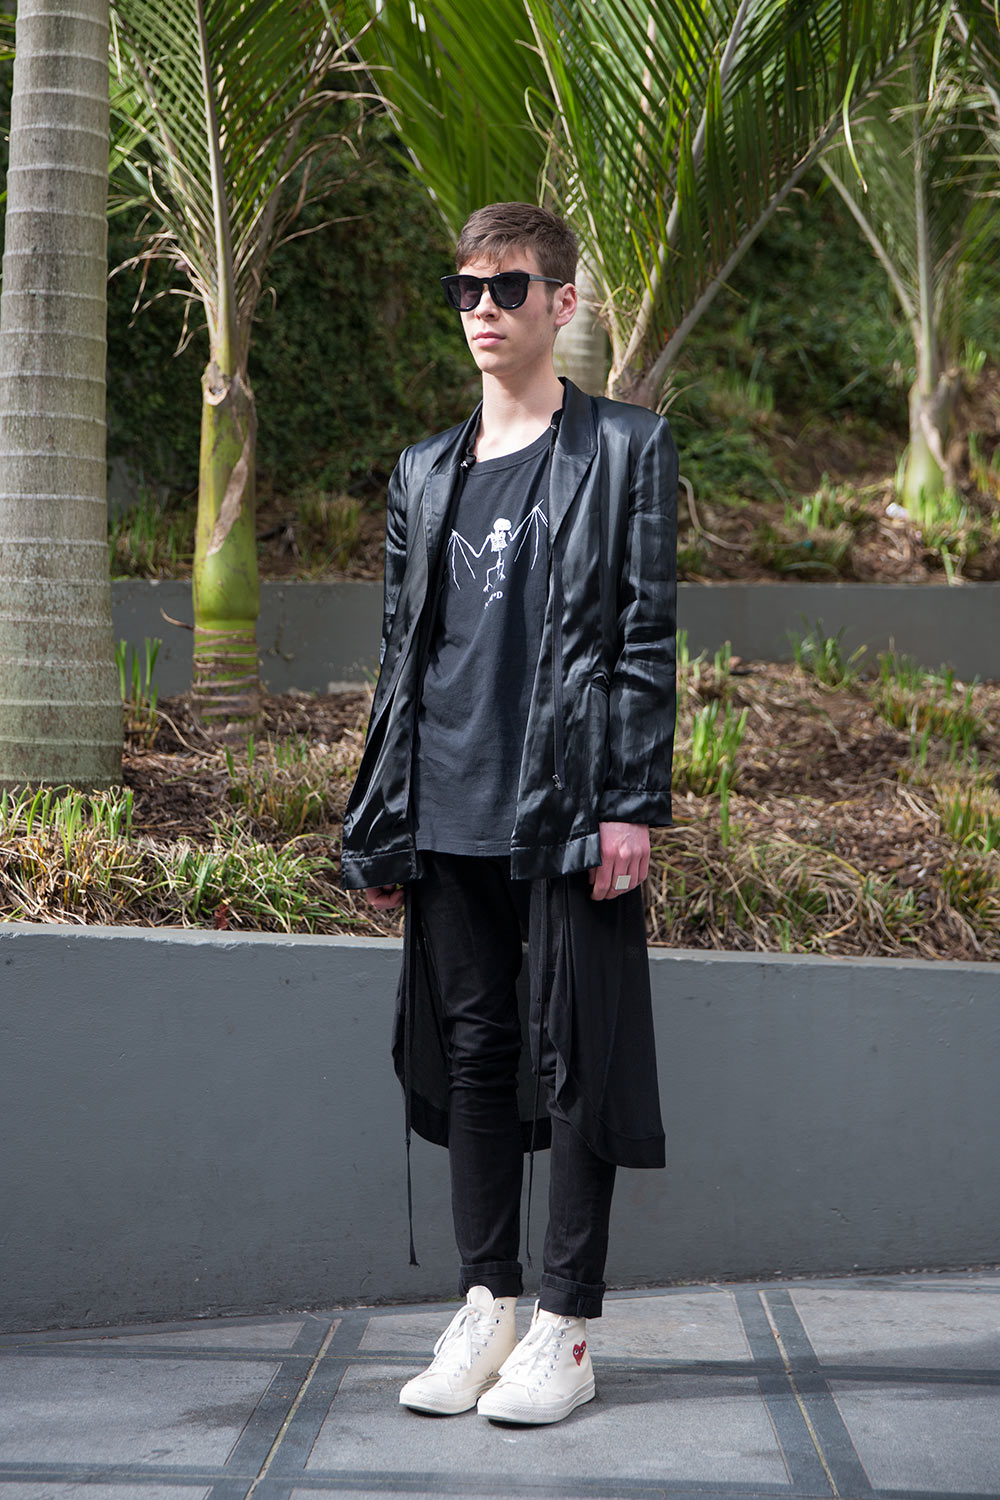 Leather jacket auckland